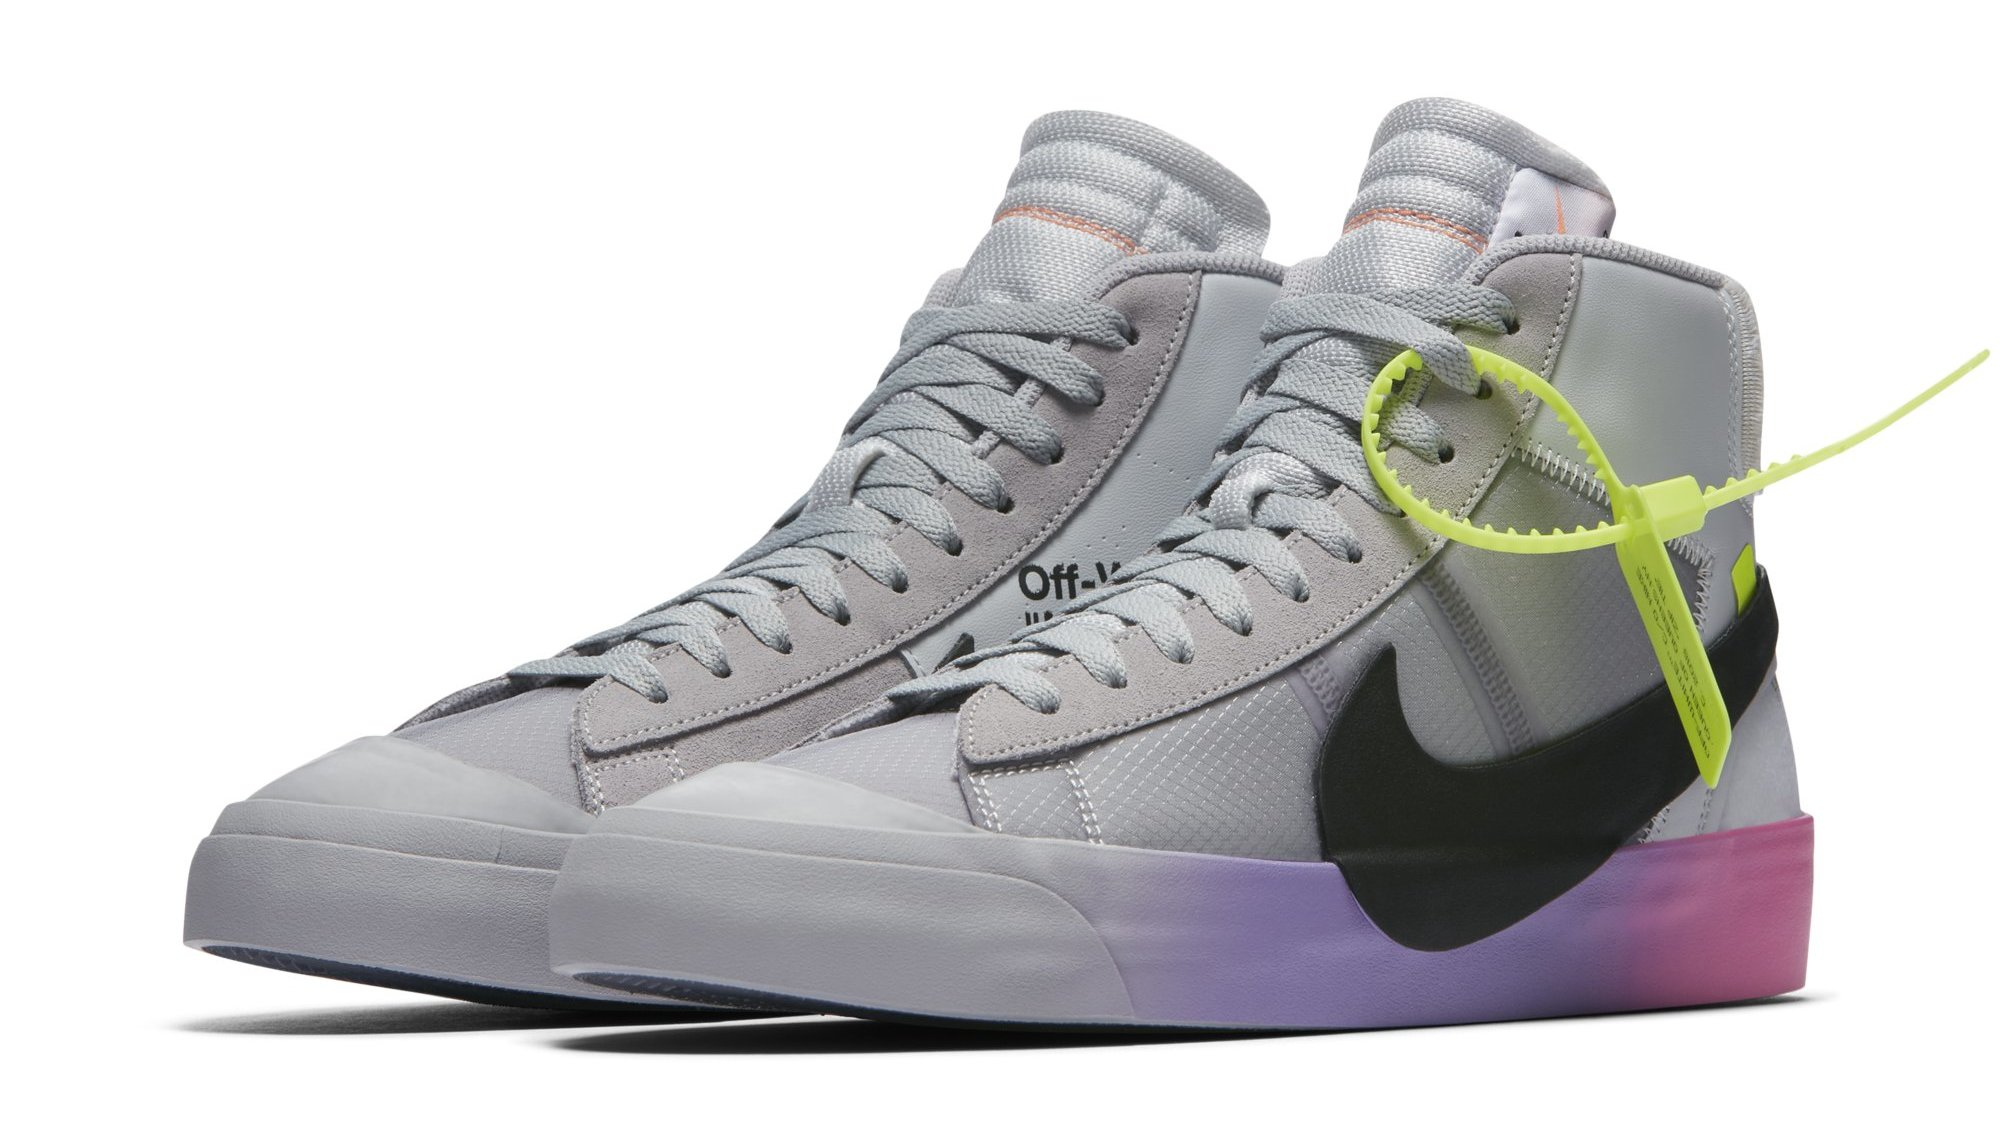 94d234a5e761a Serena Williams x Off-White x Nike Blazer 'Queen' AA3832-002 Release Date |  Sole Collector